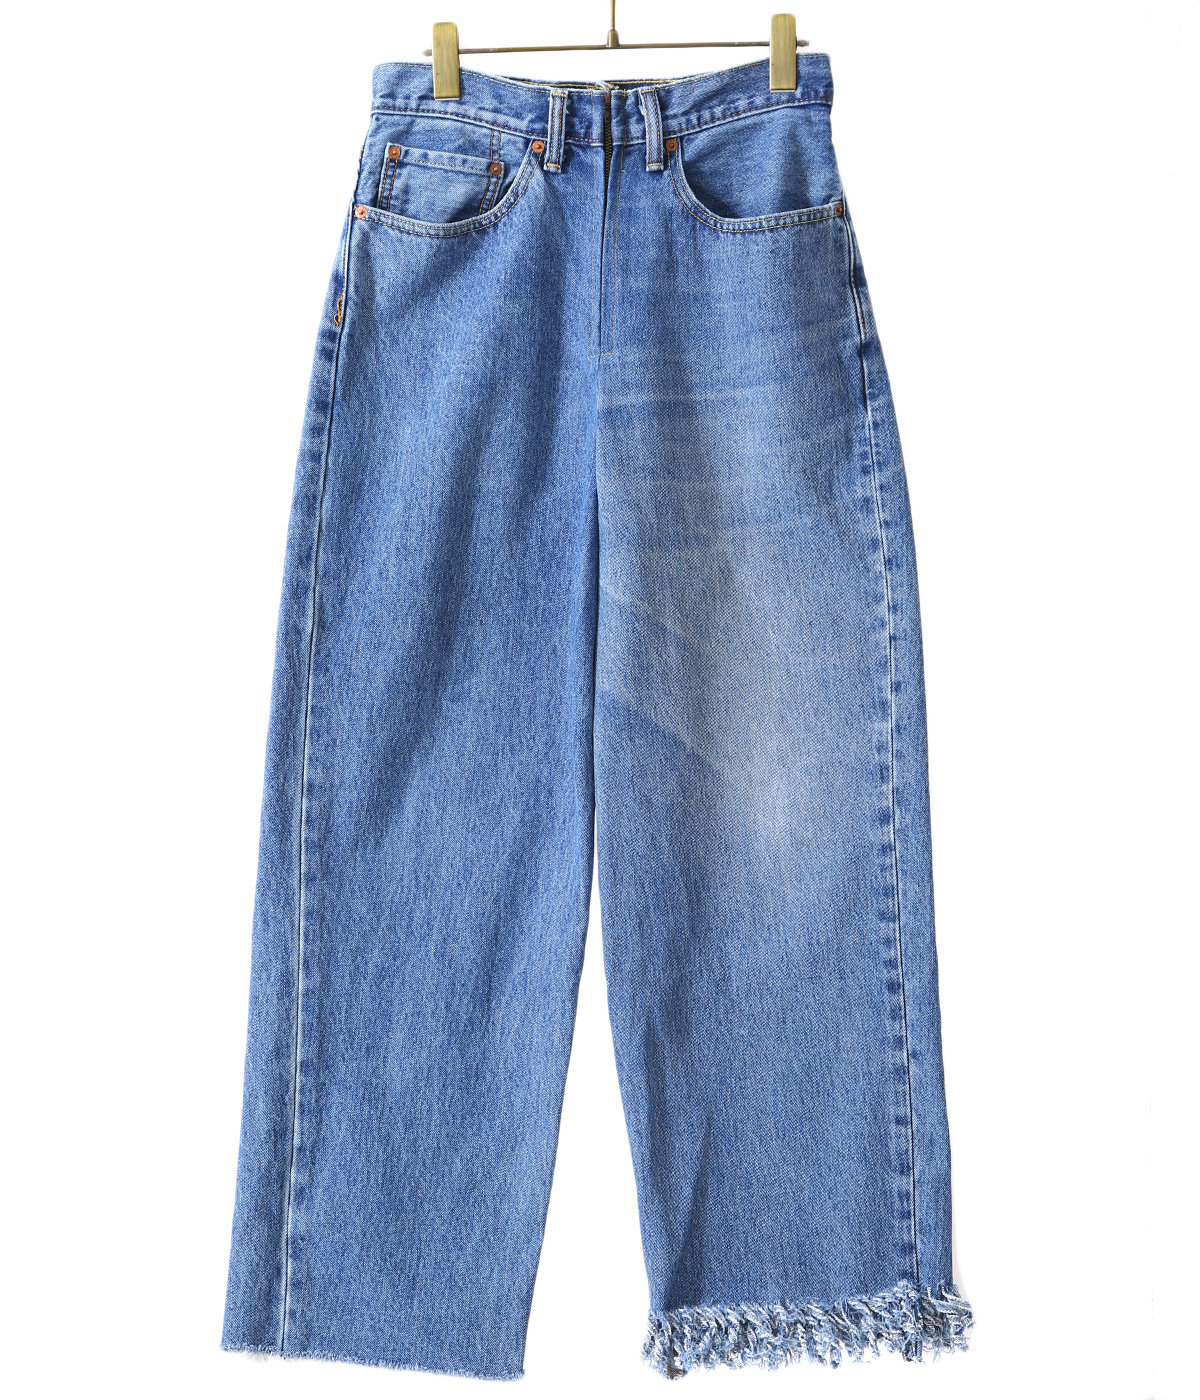 【レディース】circa make fringe denim pants[span100]